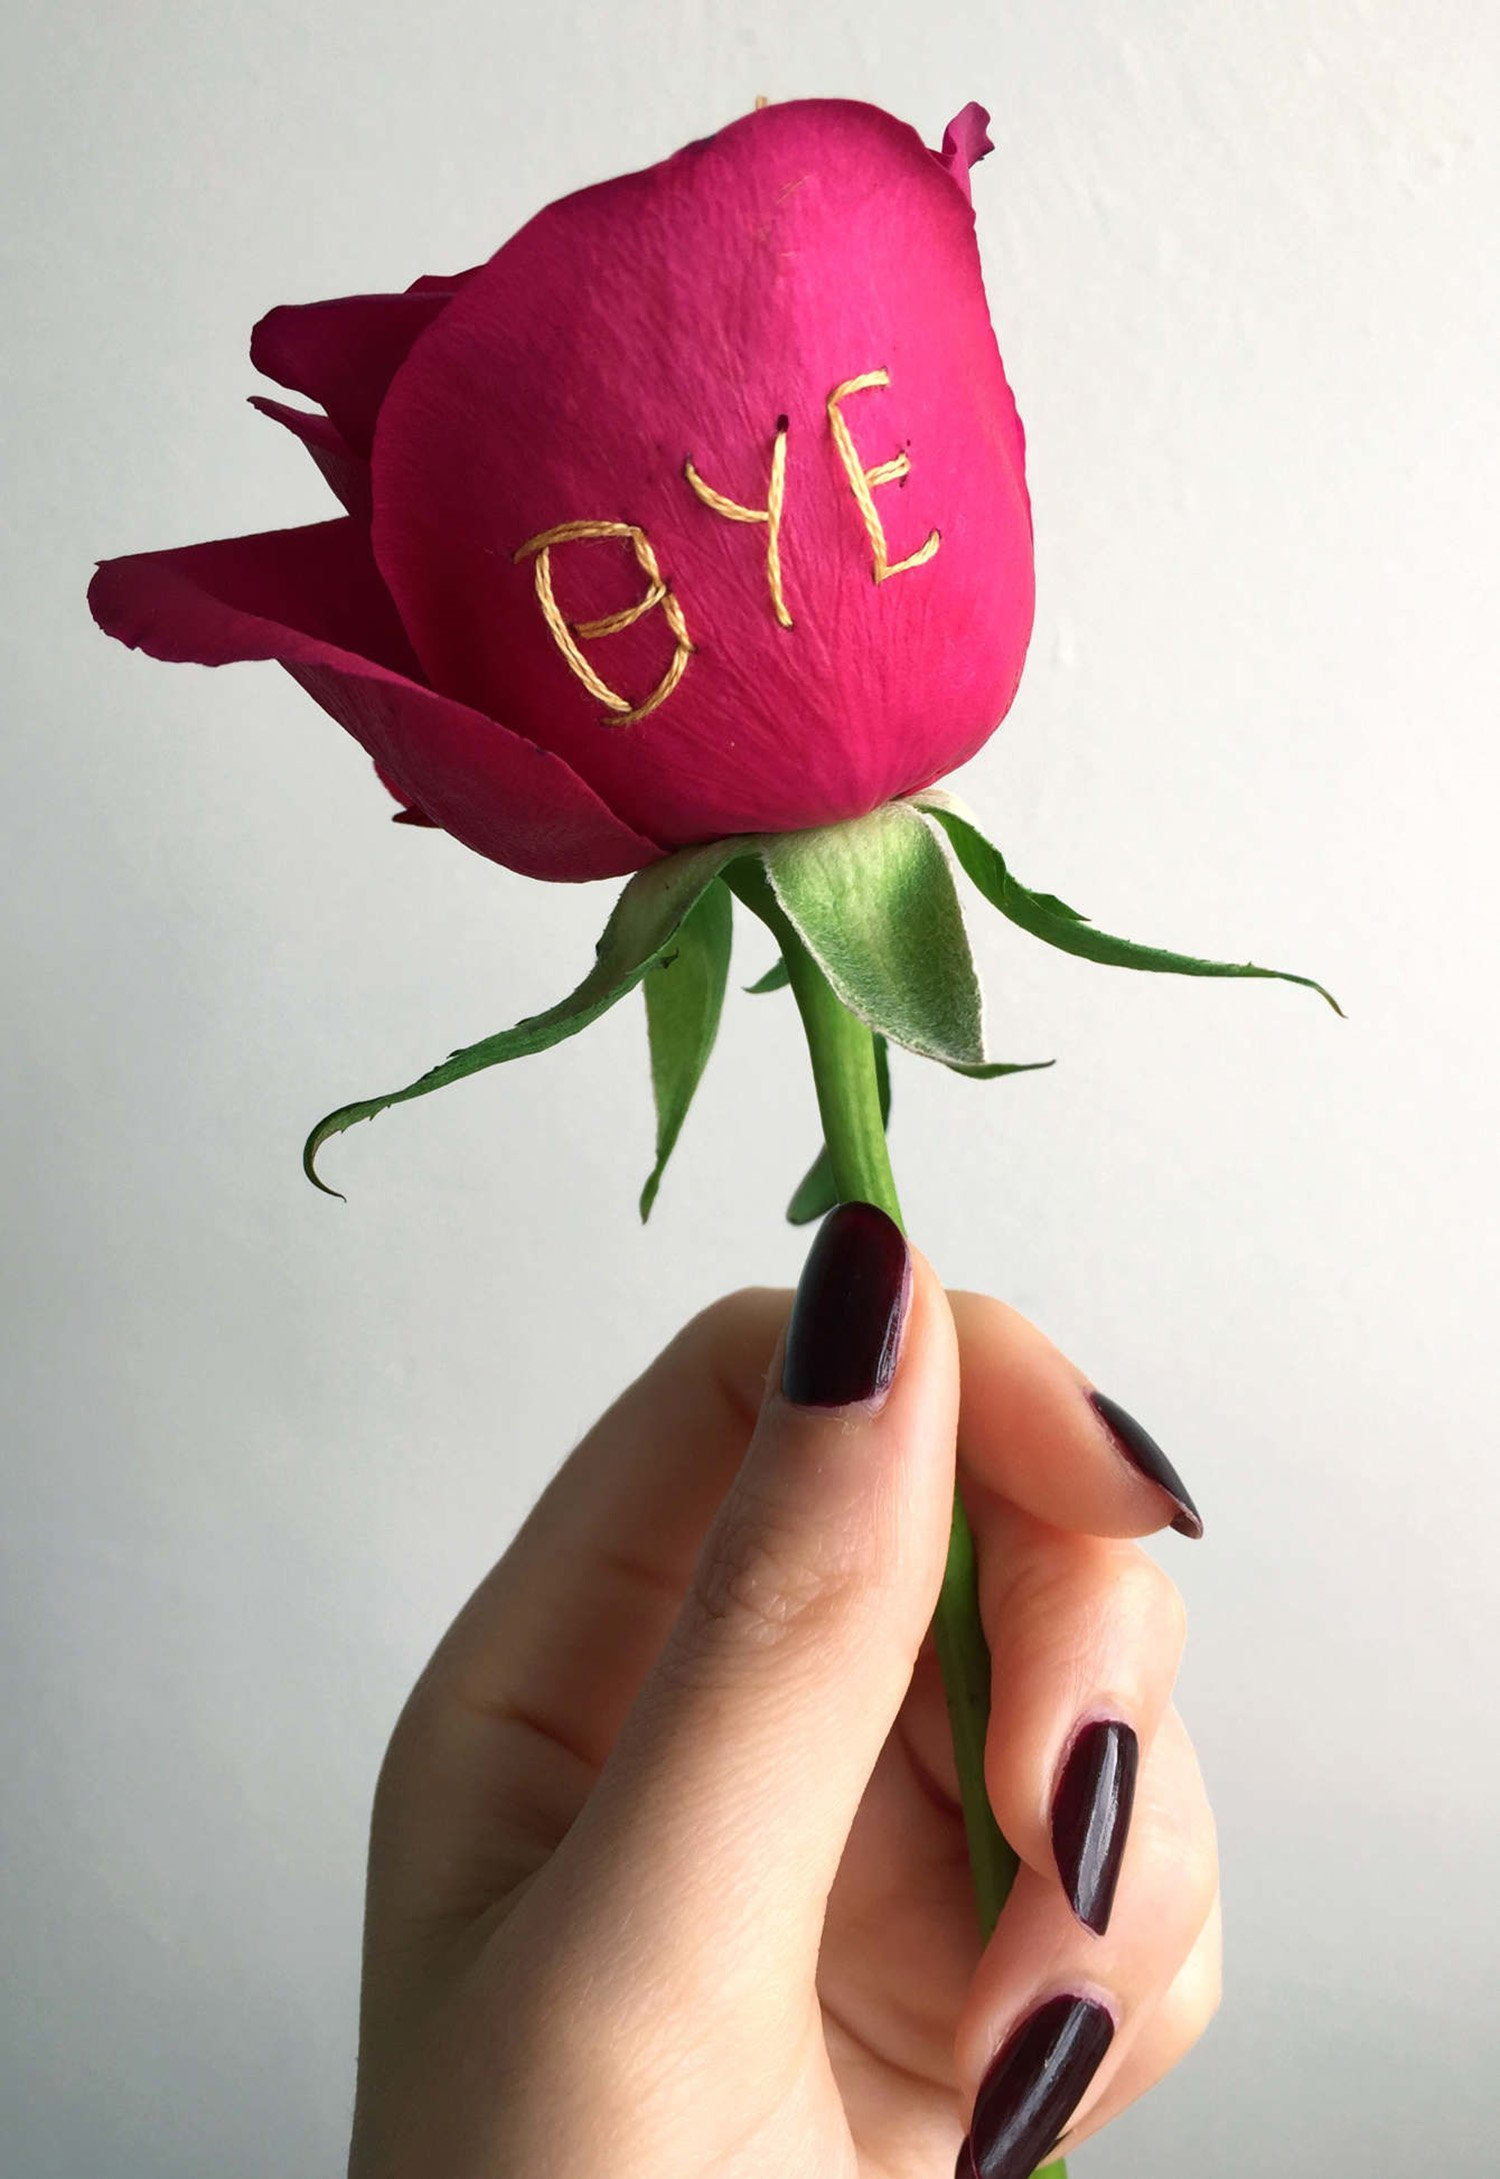 bye embroidery on red rose